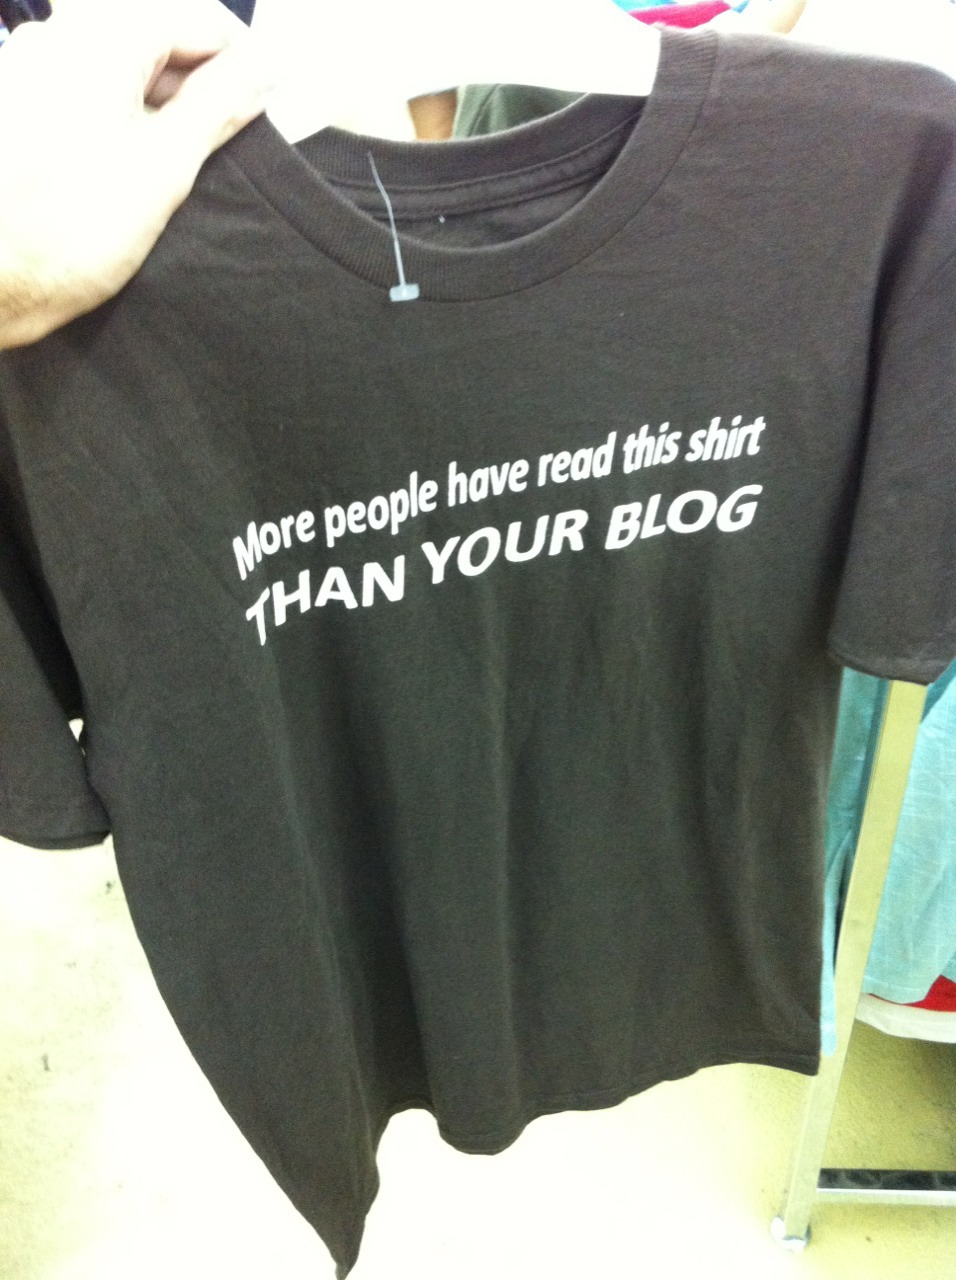 notahoe:  I went thrift shopping today and found this shirt and I honestly think it's a sign sent from above